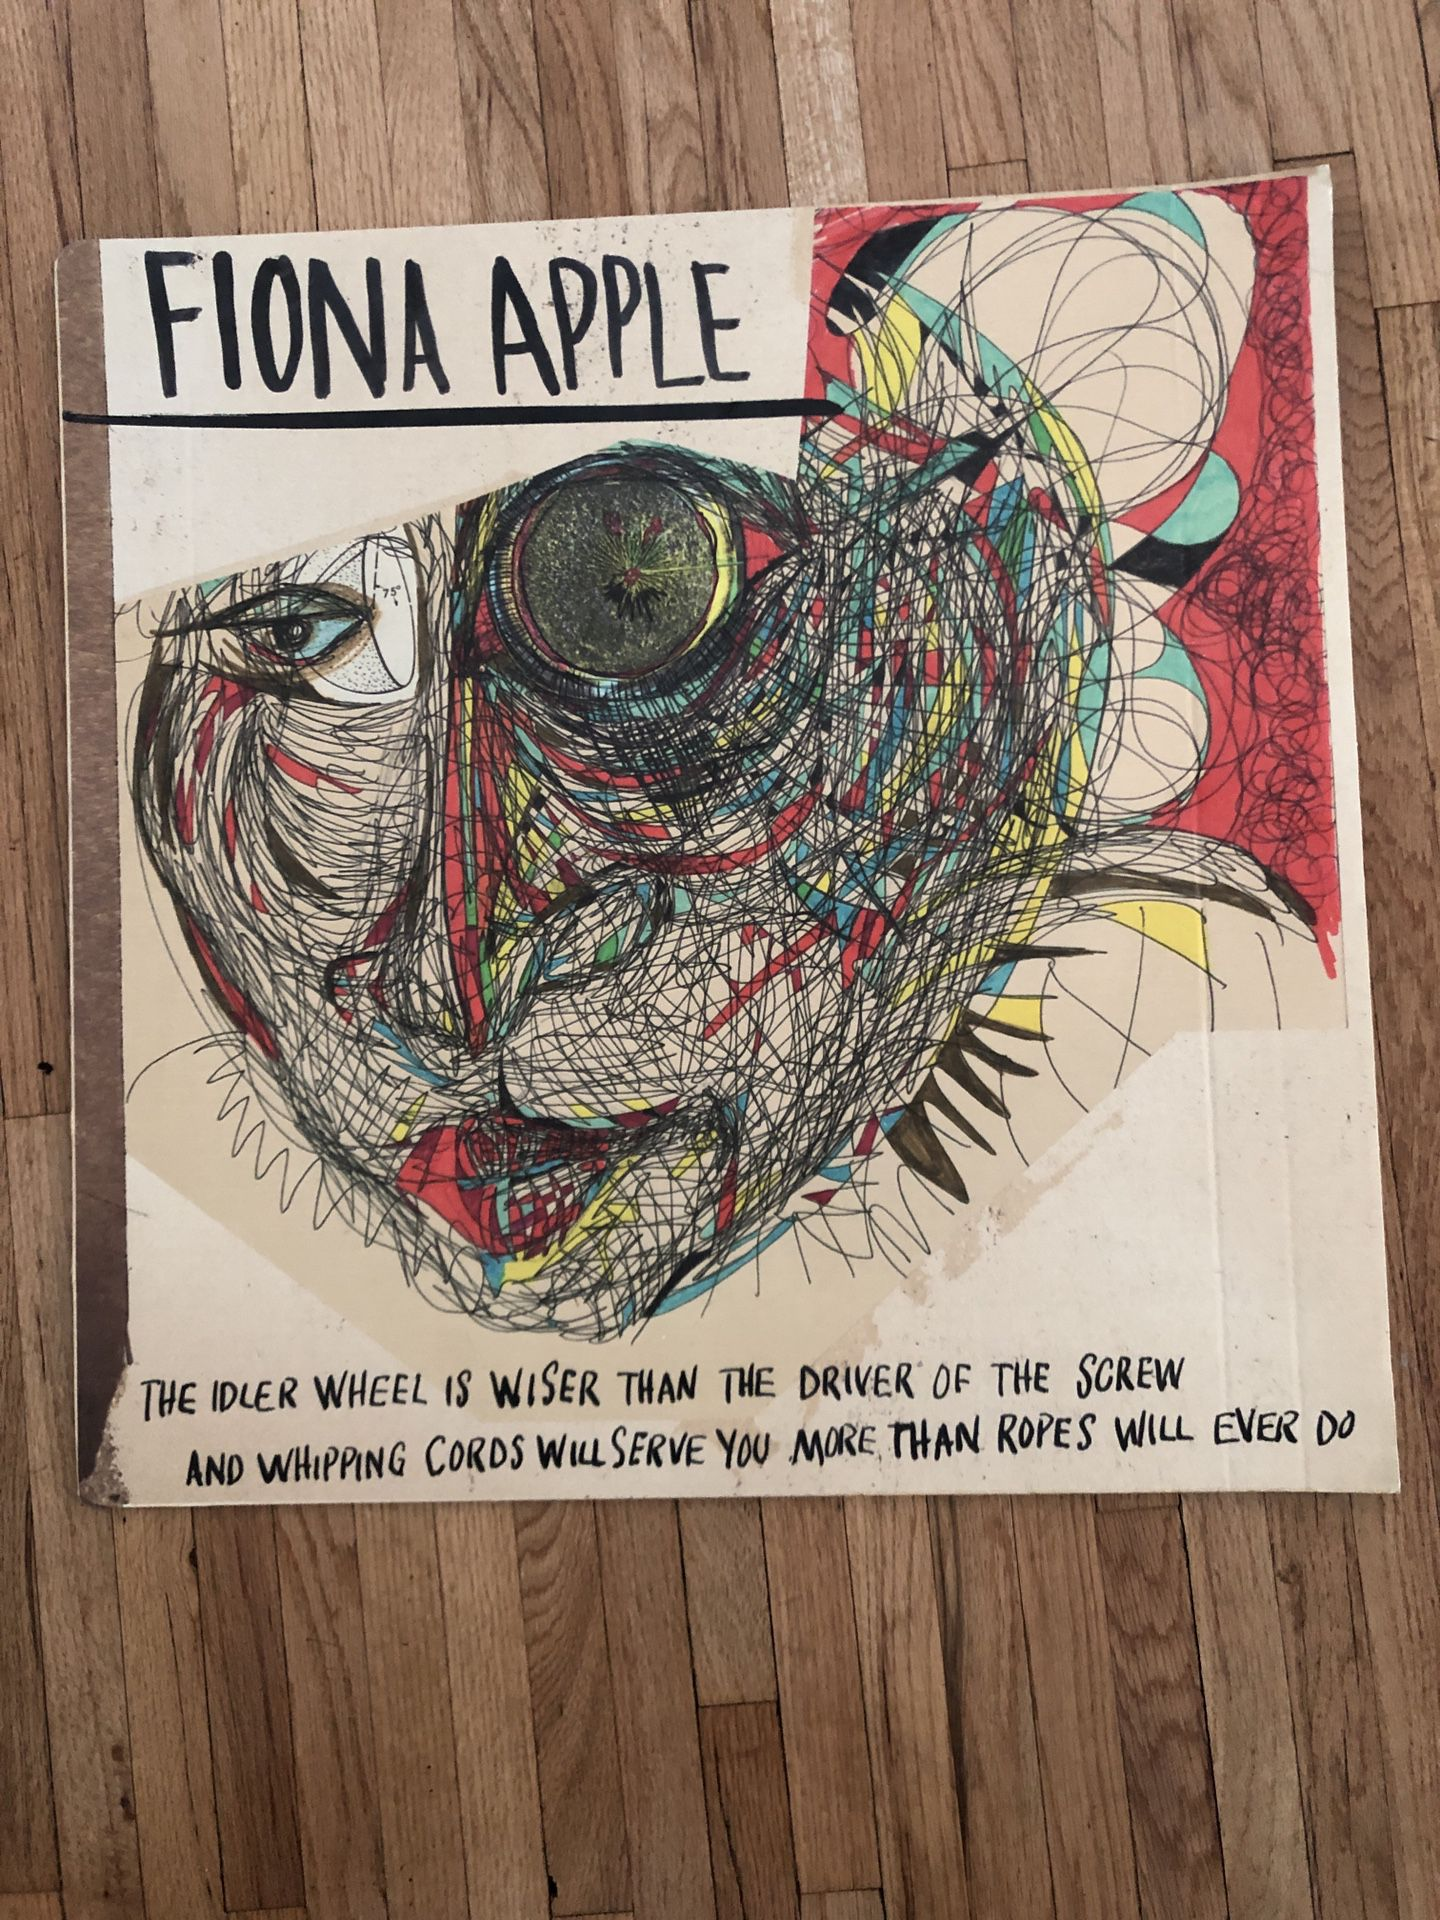 Fiona Apple - The Idler Wheel cardboard flat 24 inches by 24 inches